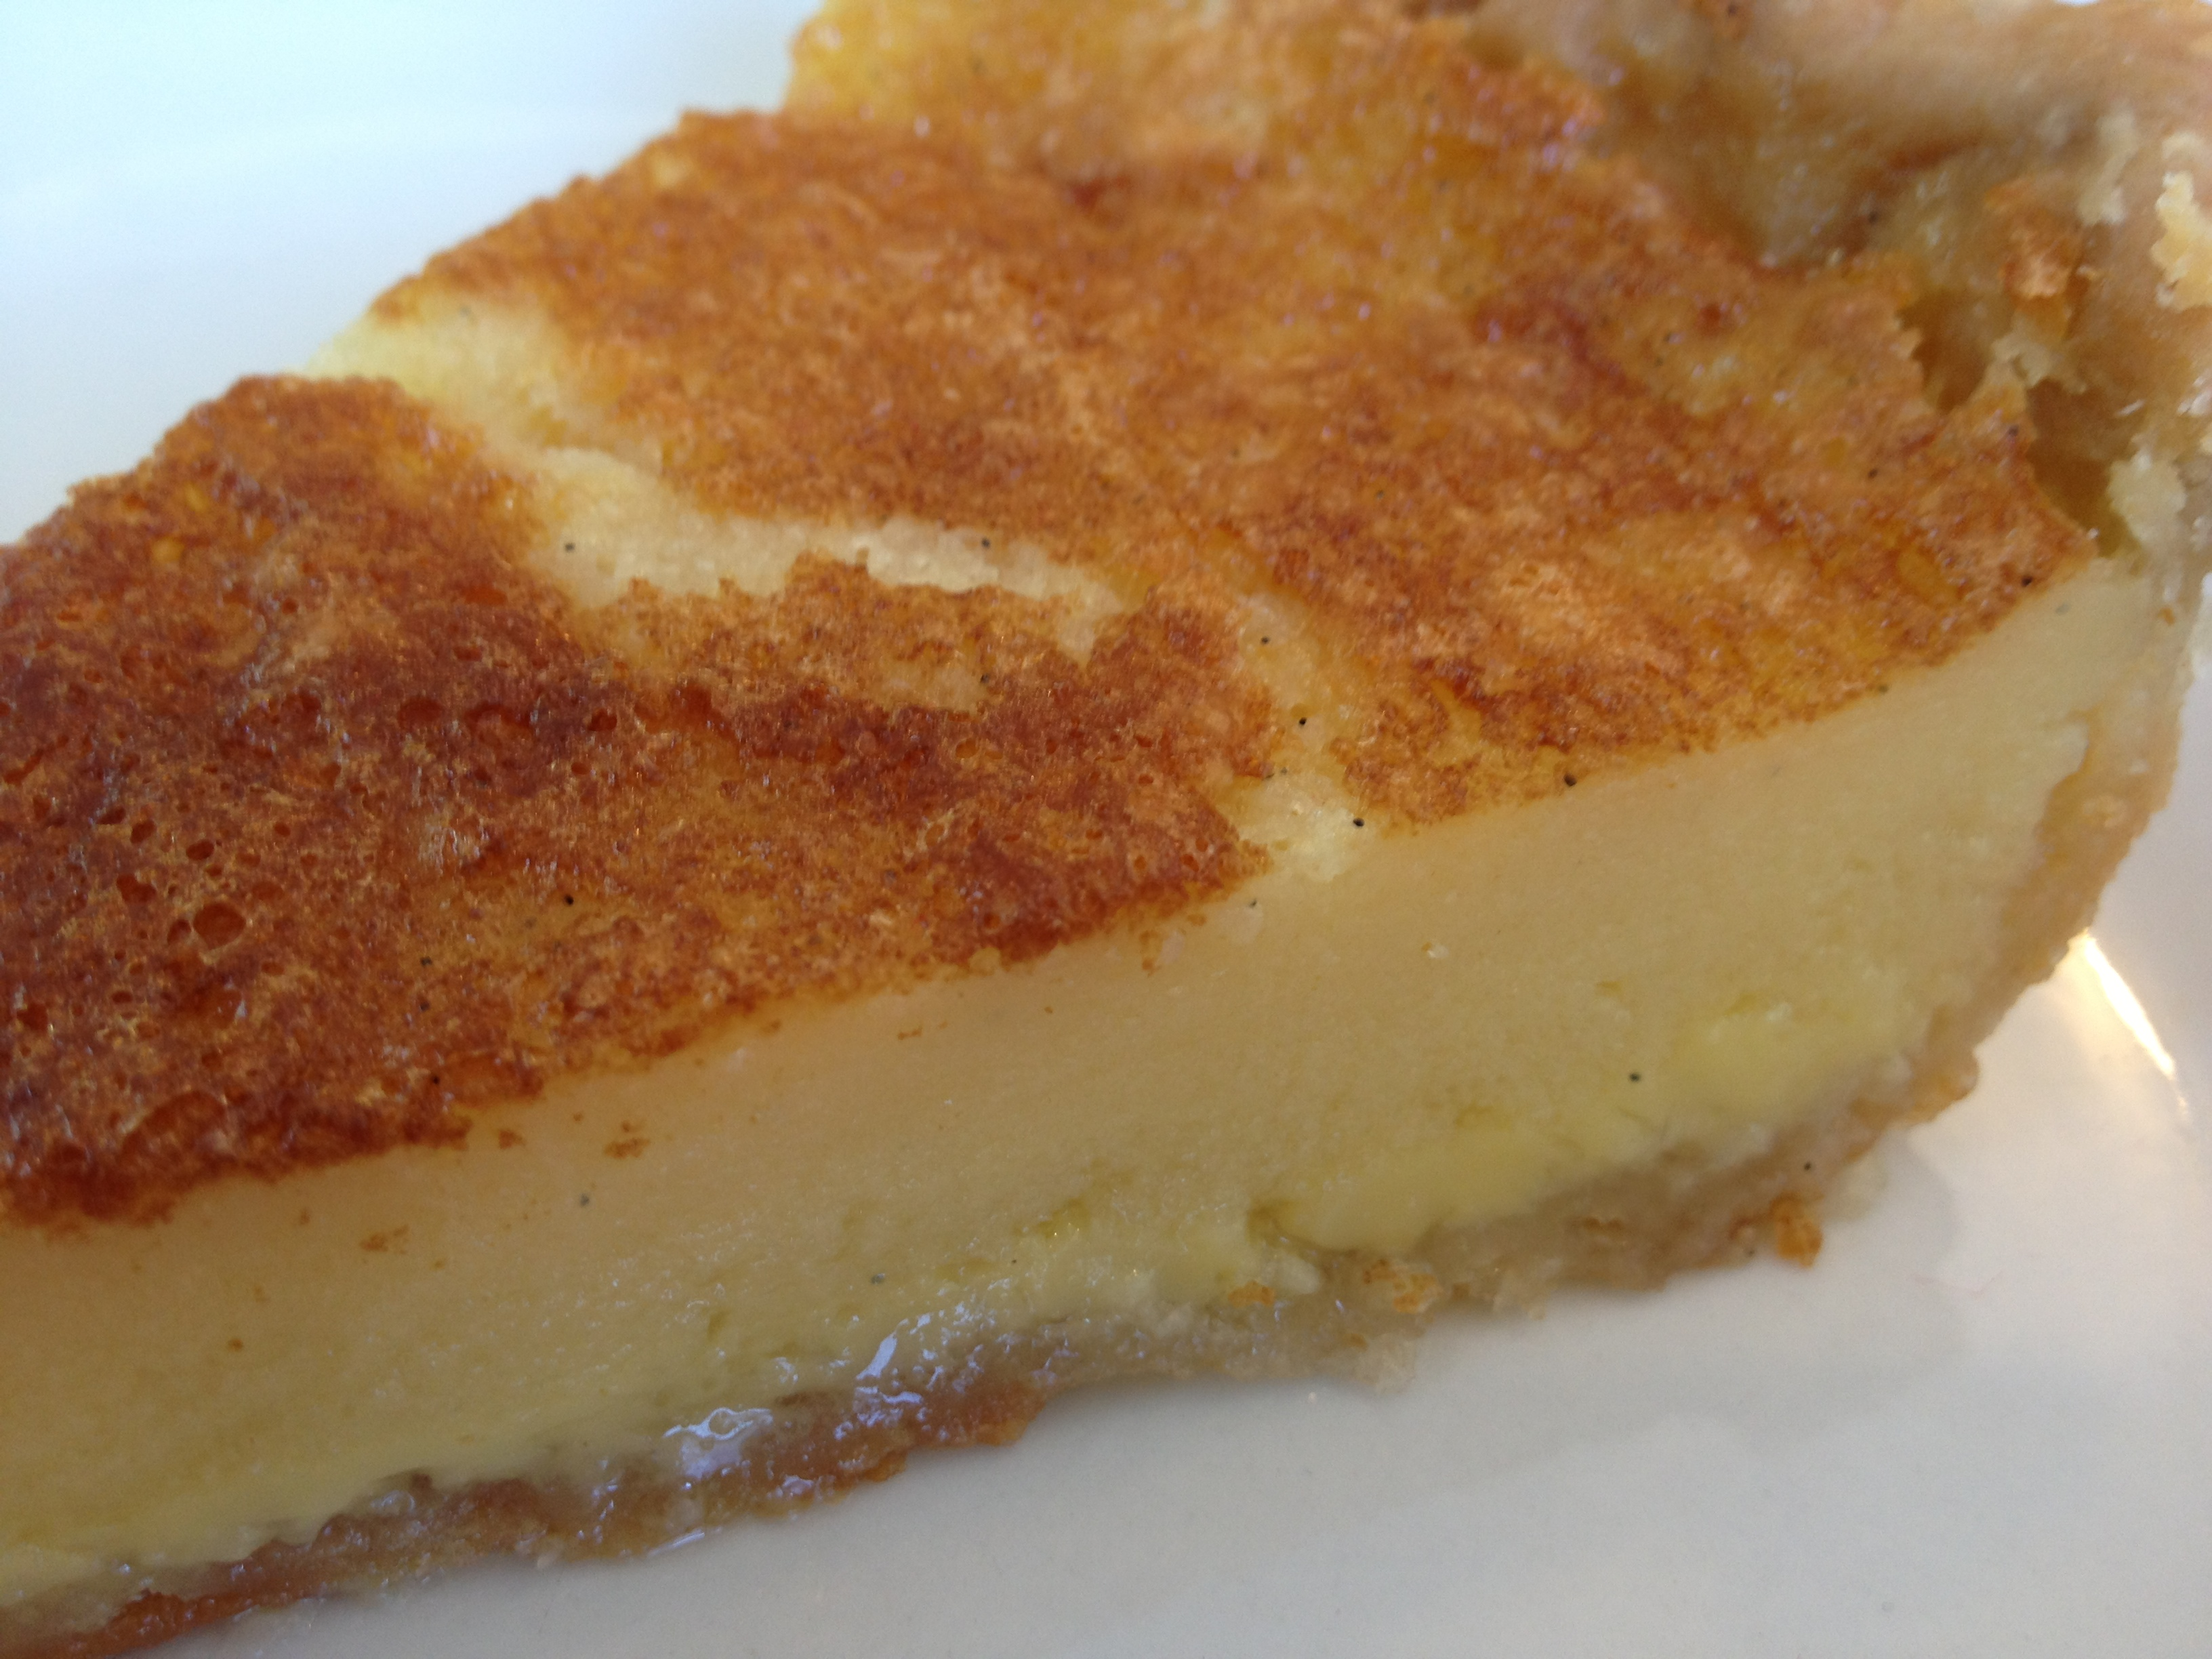 ... buttermilk pie suspicion that this pie is buttermilk pie buttermilk